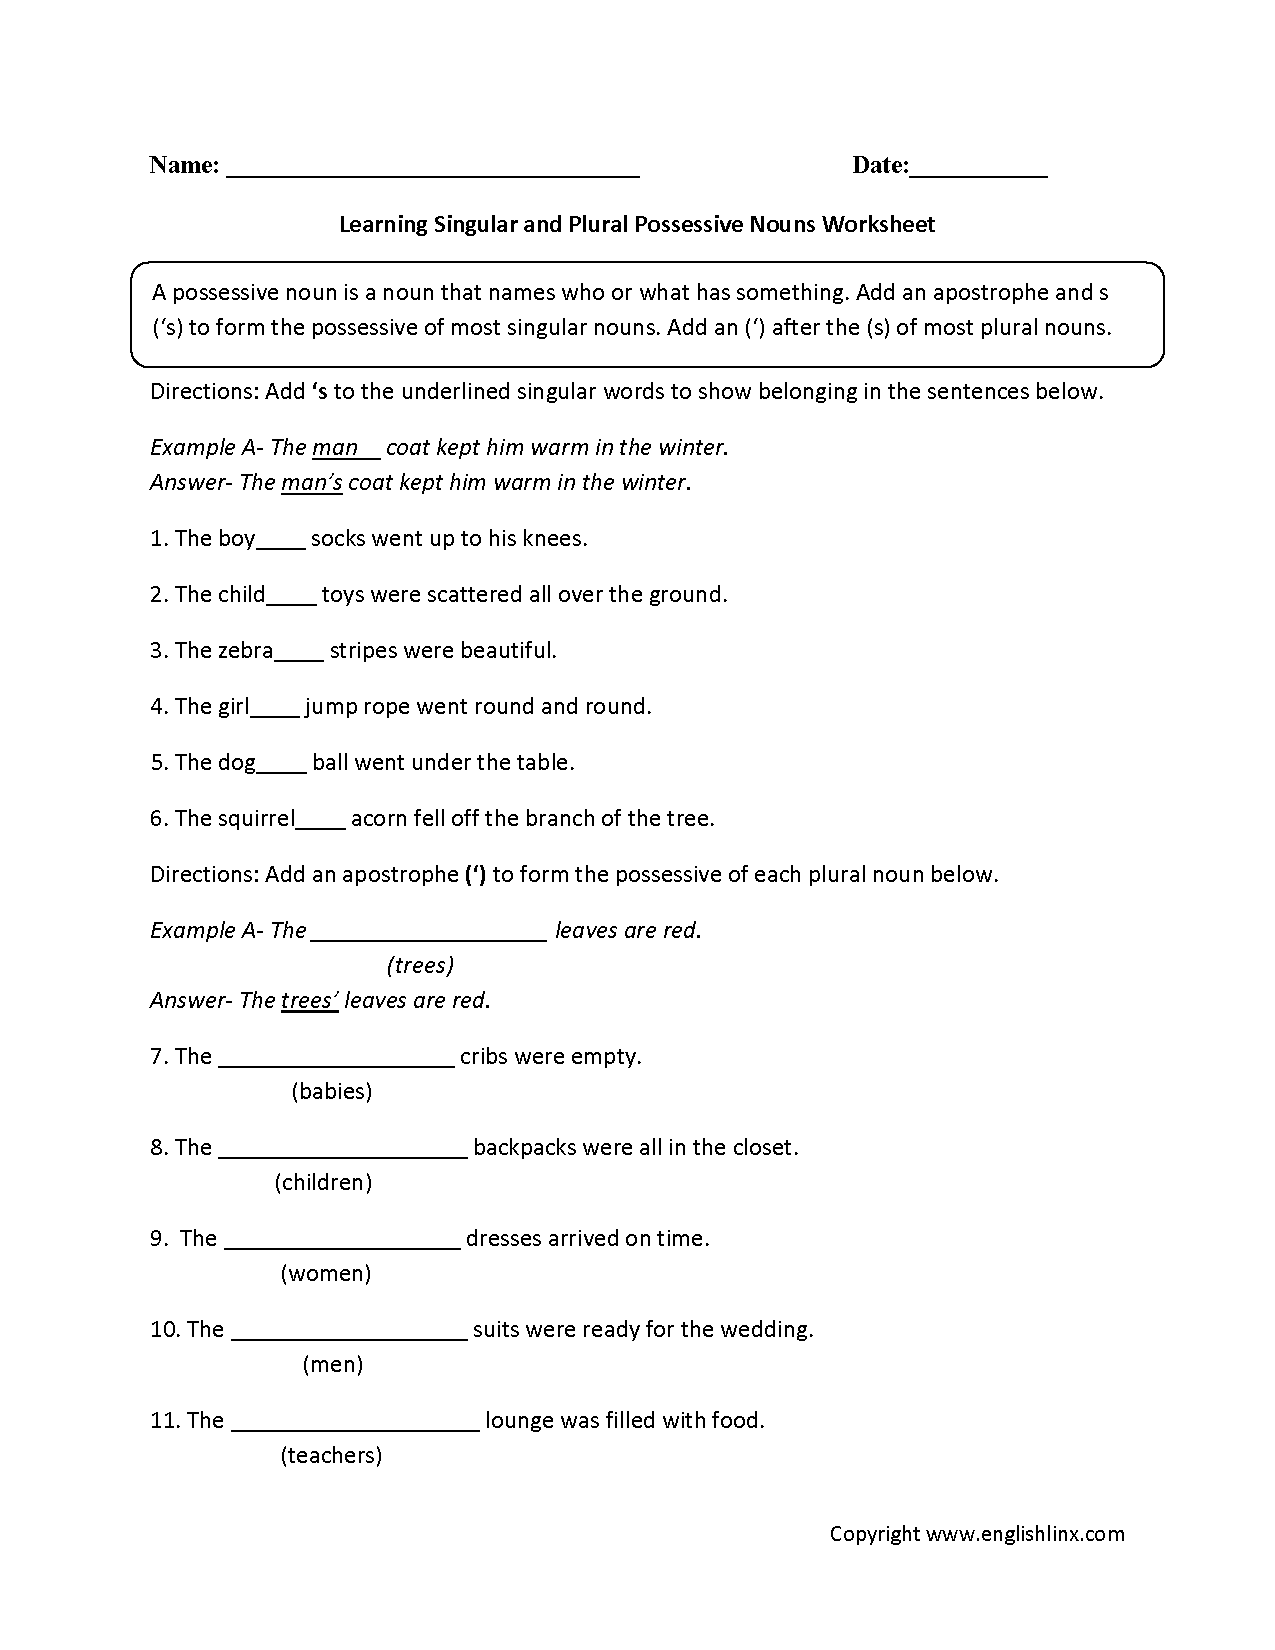 Worksheets Noun Worksheets 3rd Grade nouns worksheets possessive grades 9 12 worksheets